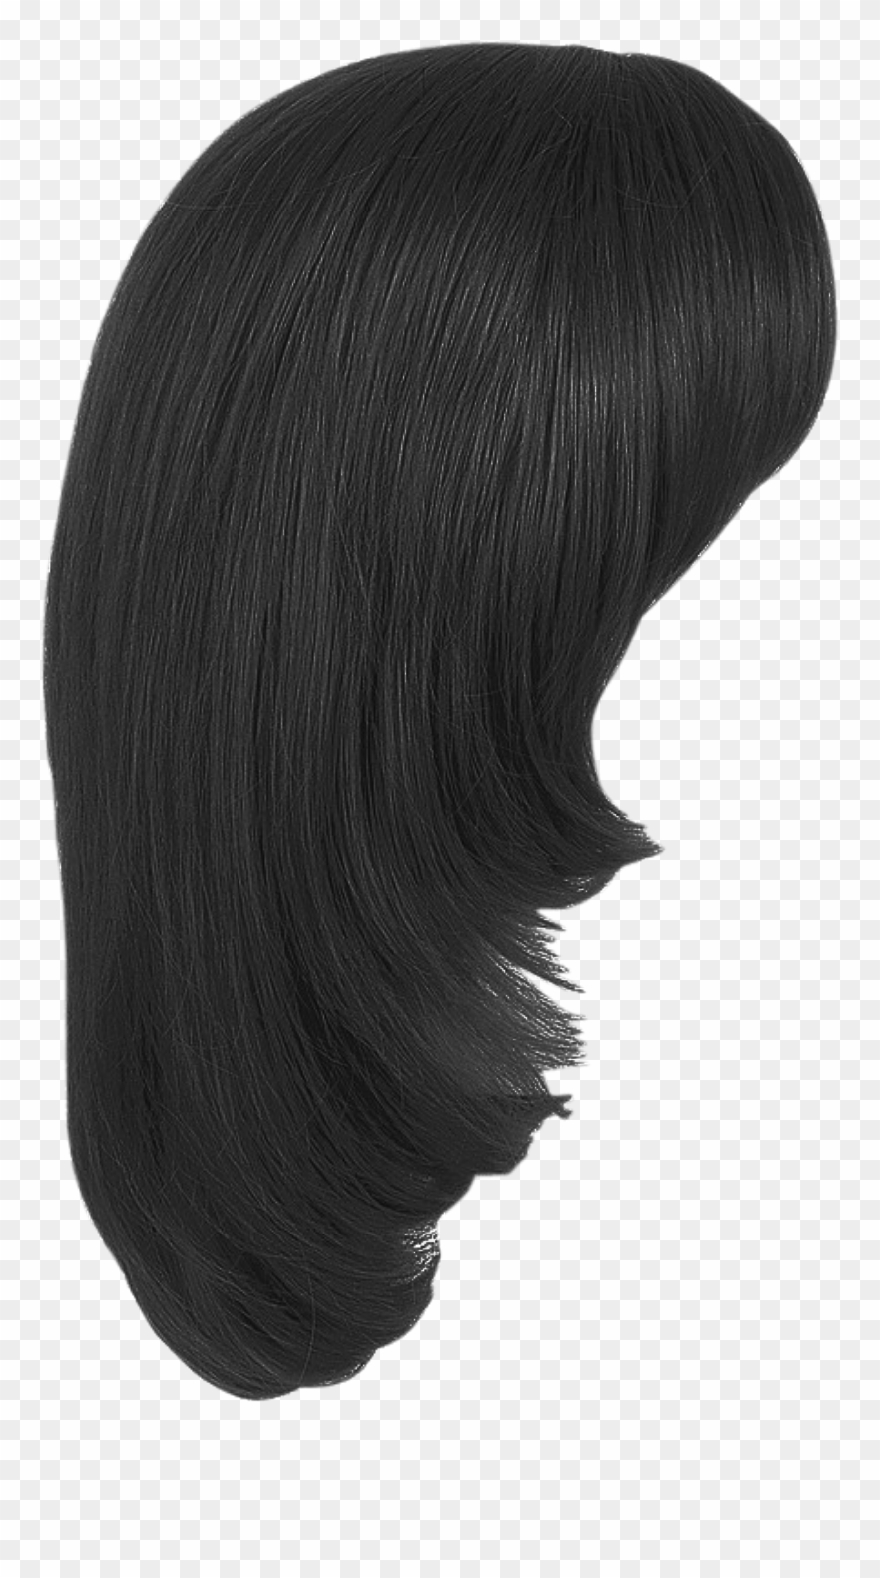 Girl Hair Png Transparent Image.